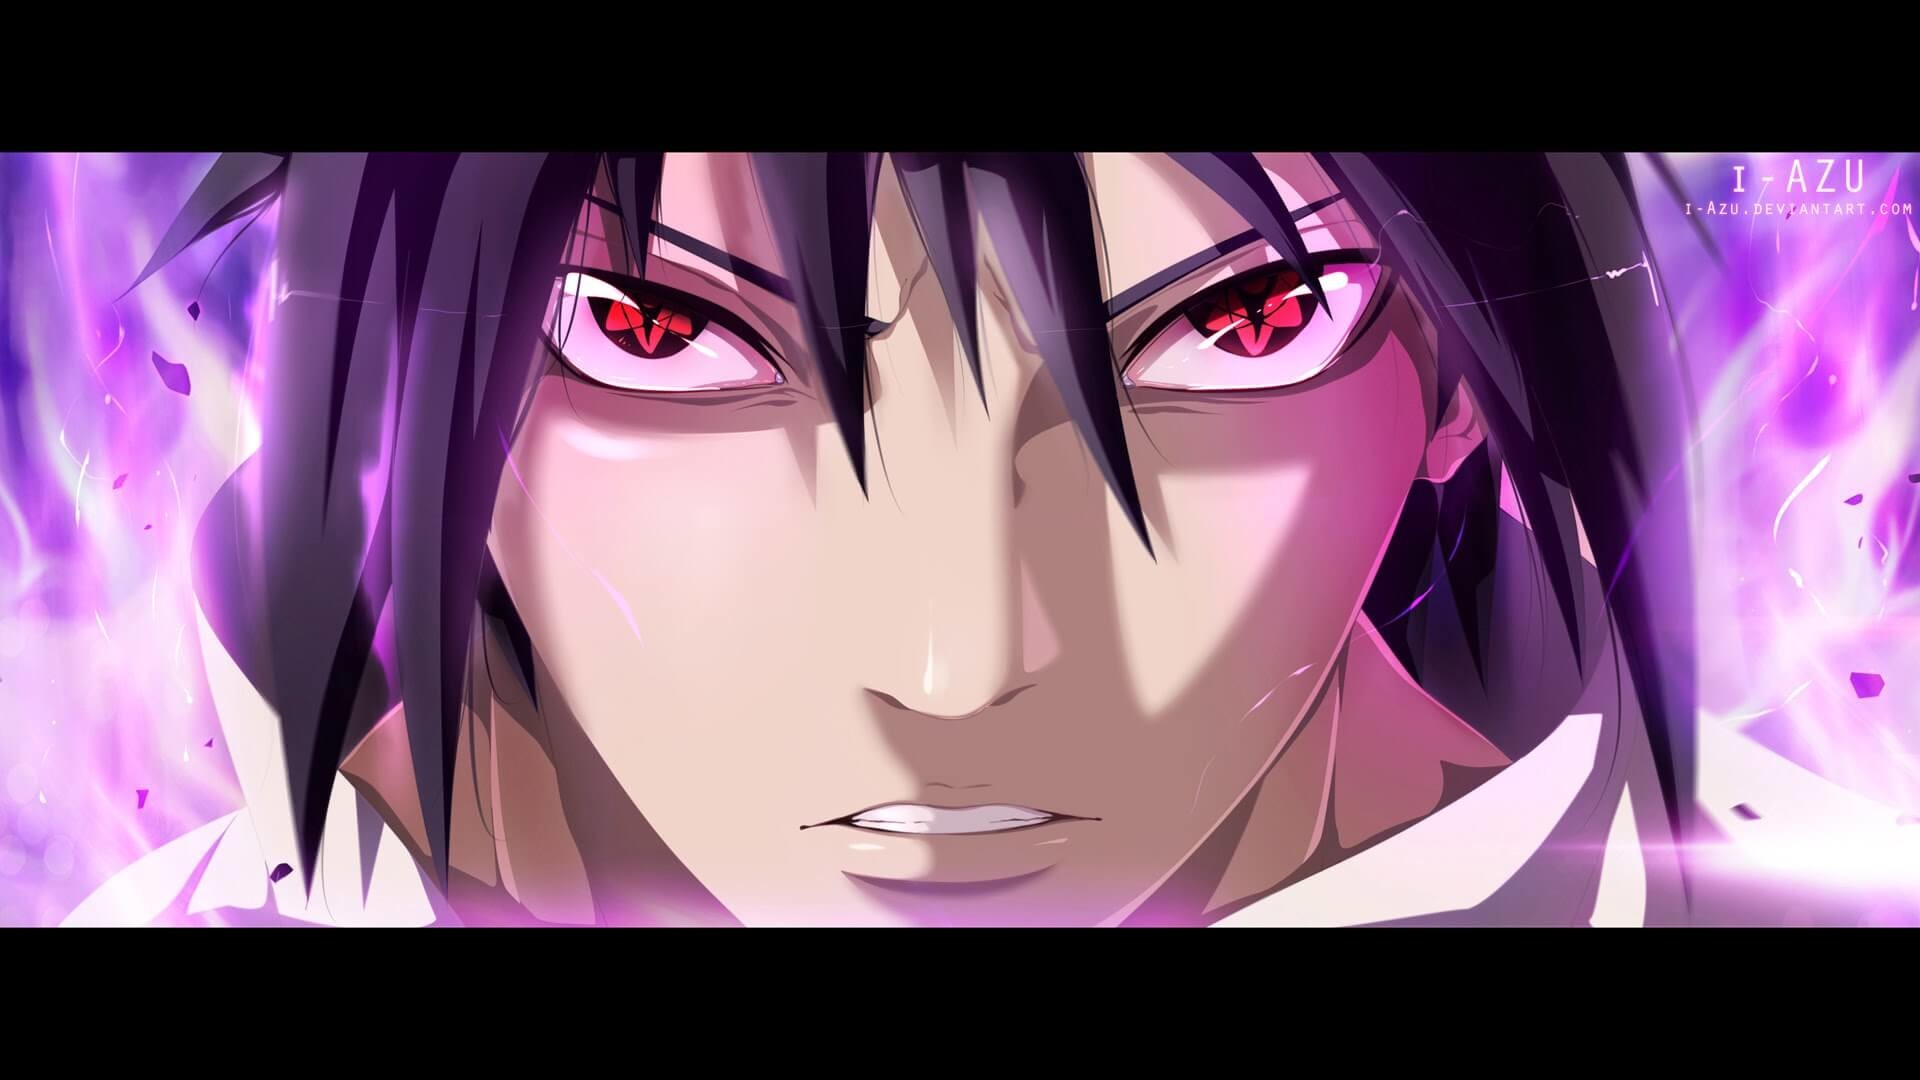 Mangekyou Sharingan Wallpaper 1920x1080 Image Gallery